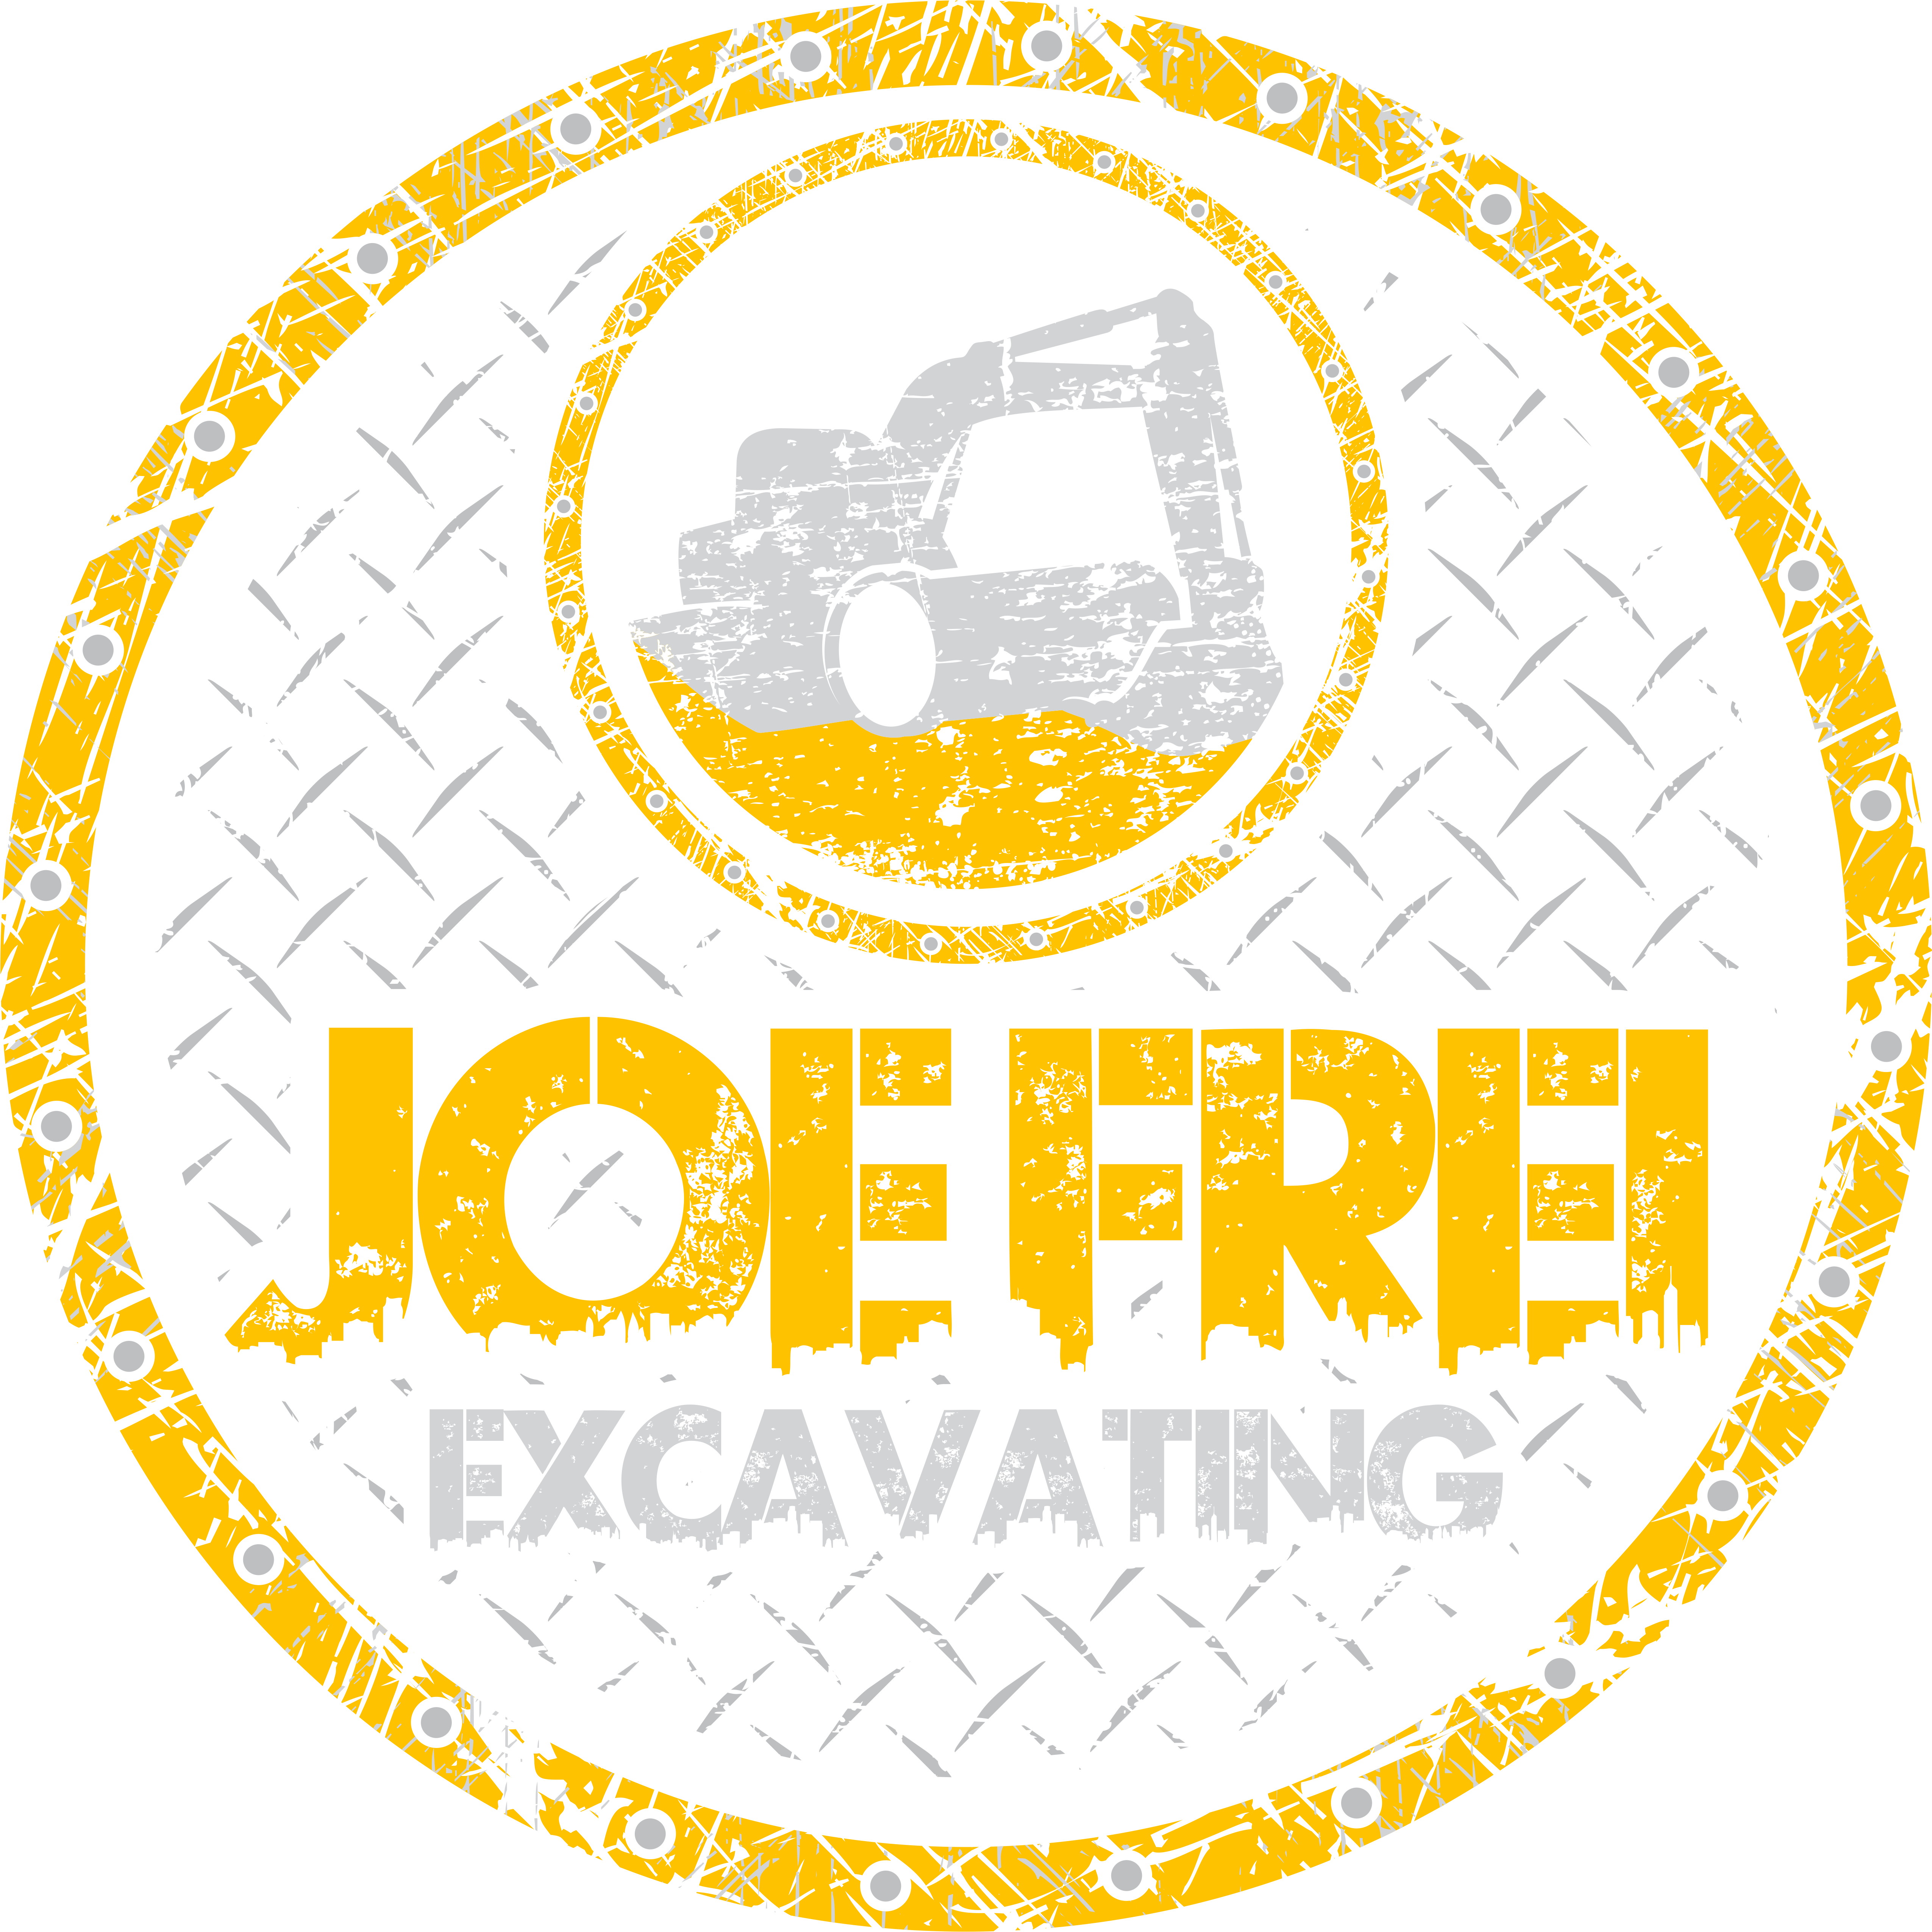 Create a t-shirt design for an excavating company